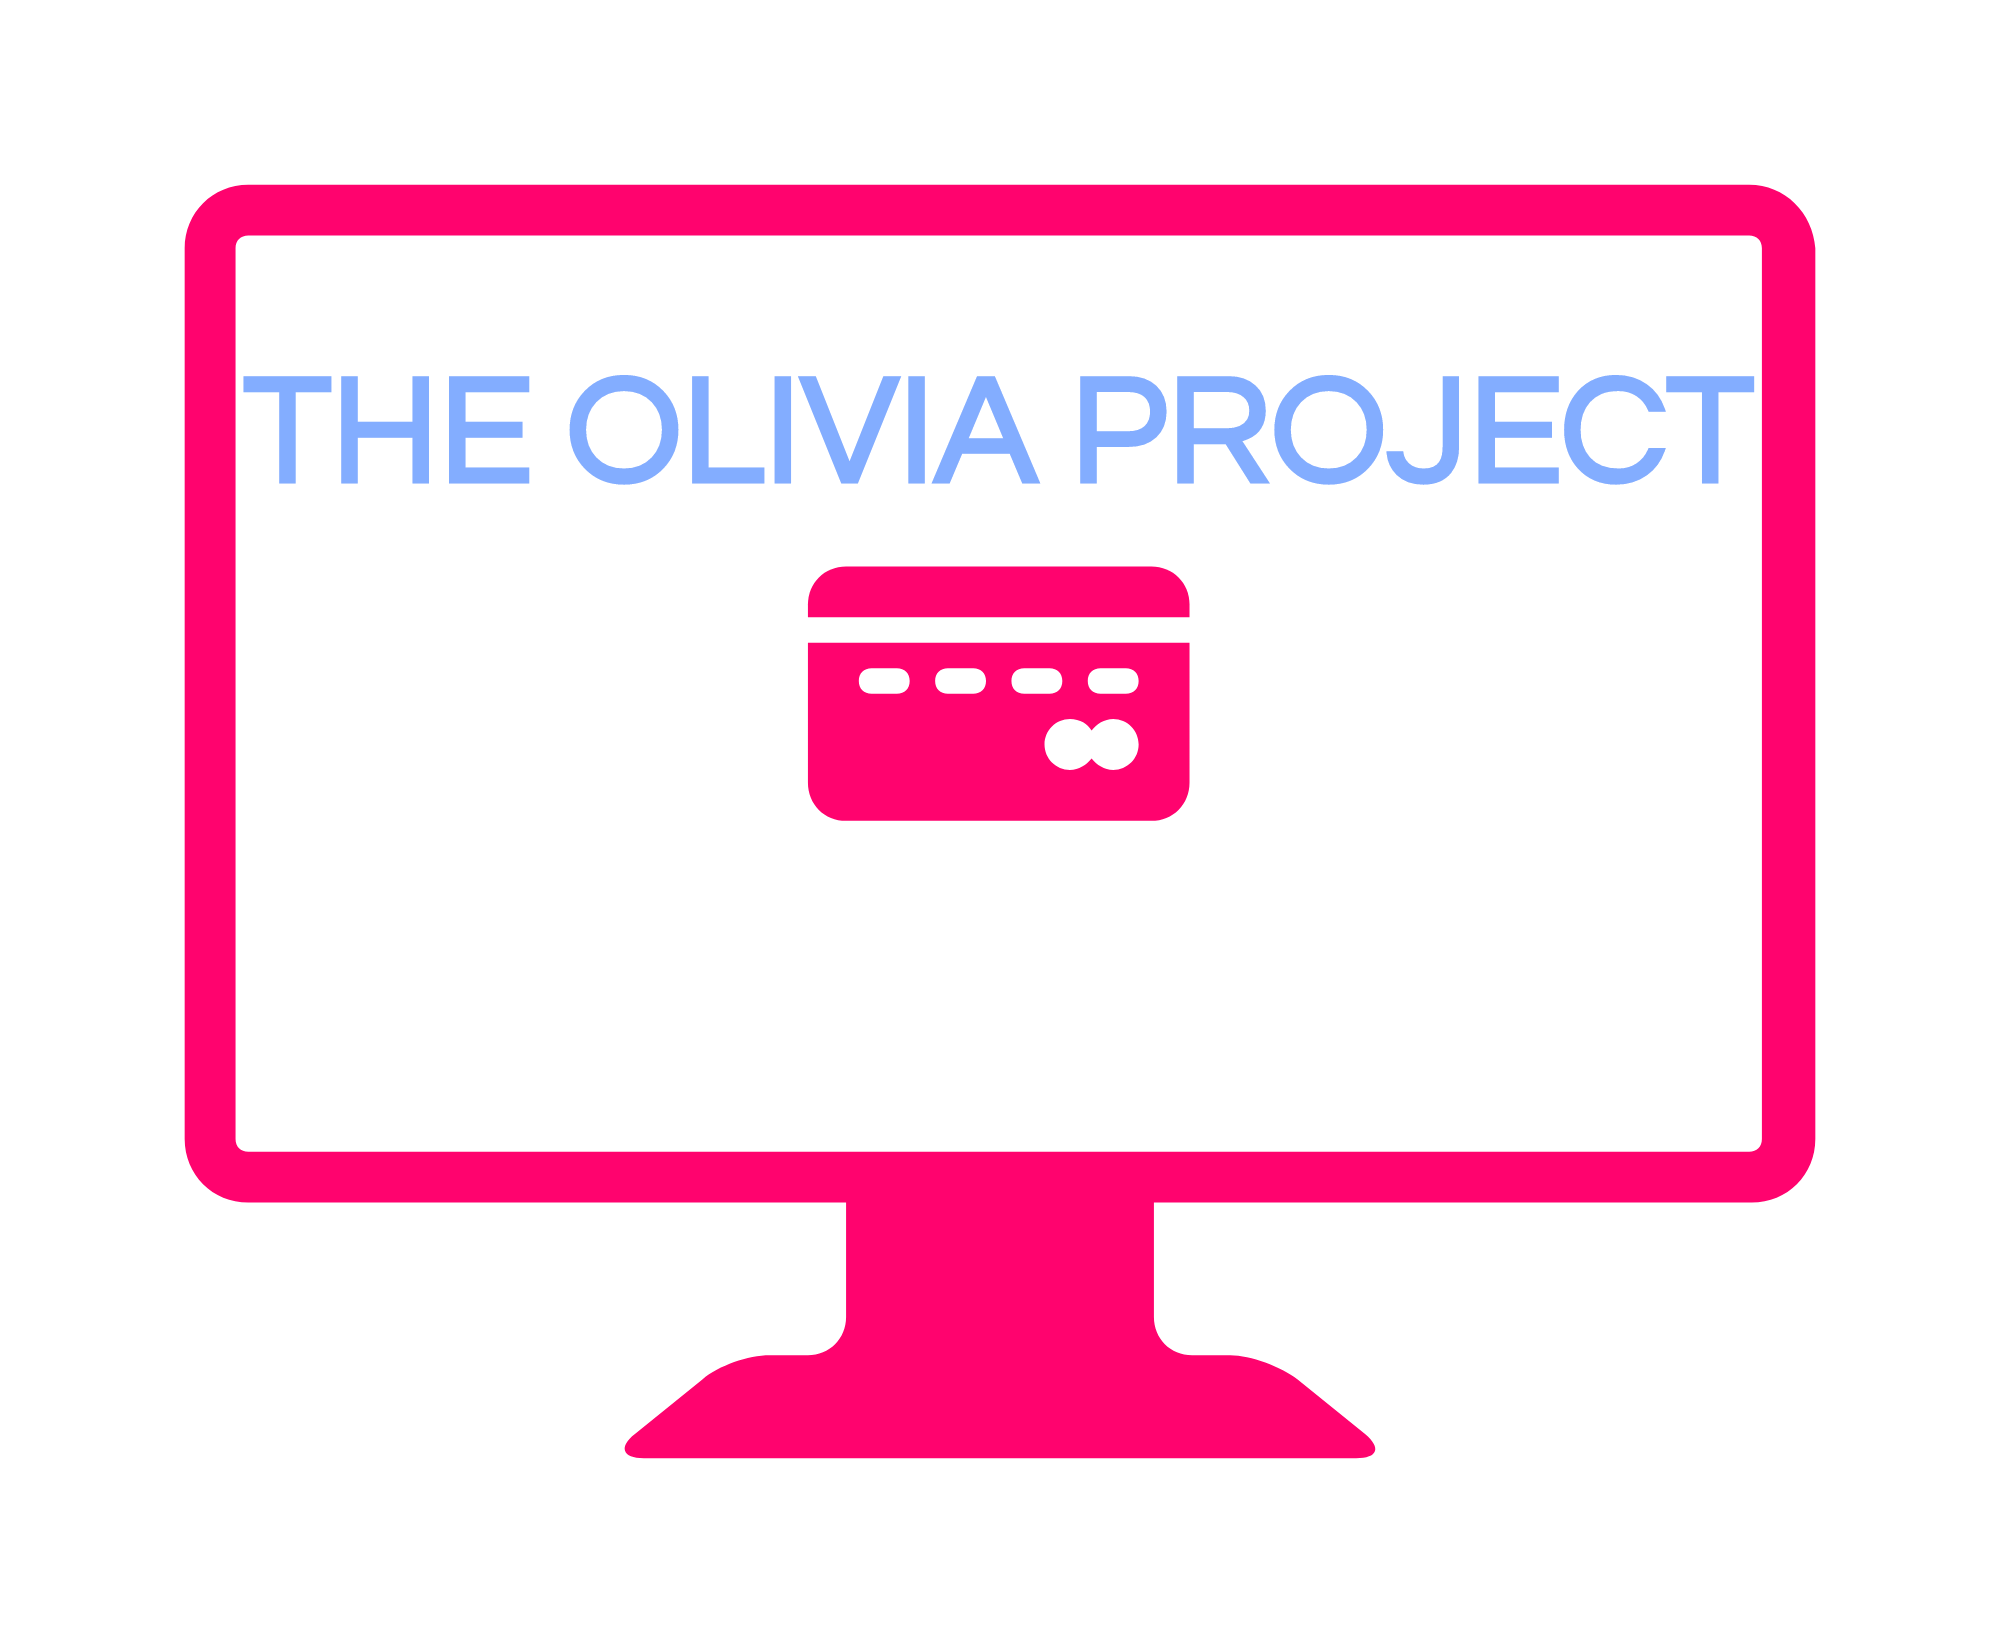 THE OLIVIA PROJECT